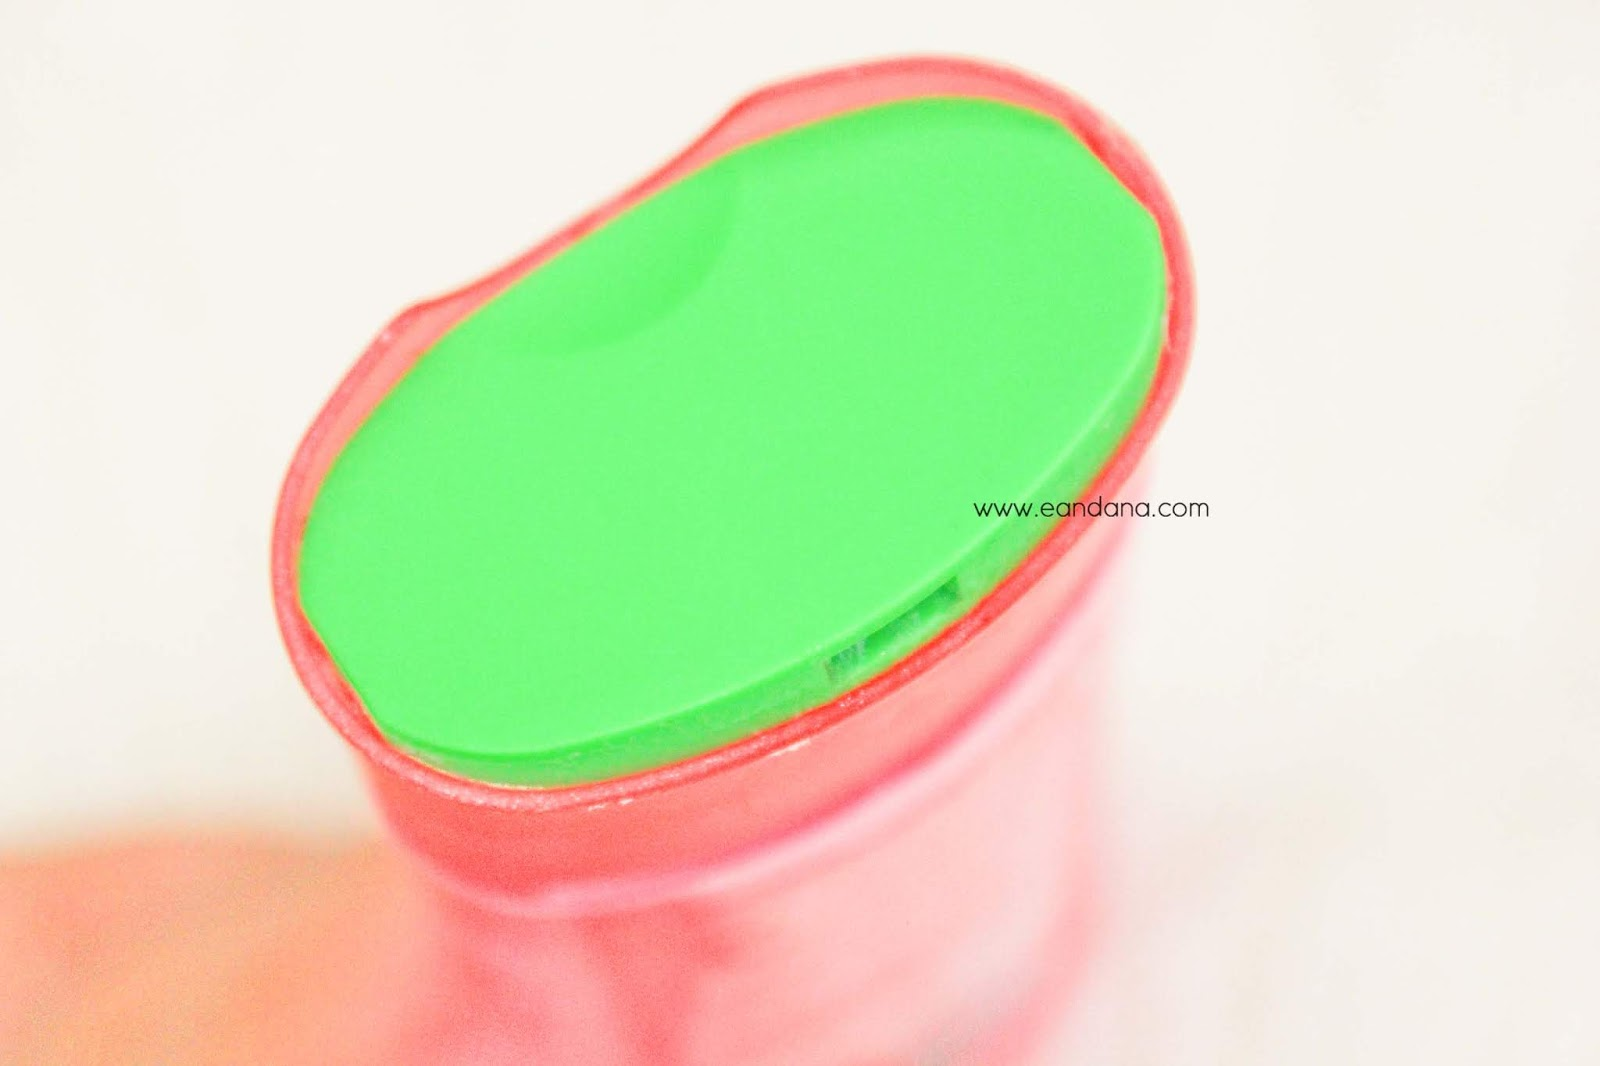 herbal essences colour me shiny shampoo lid